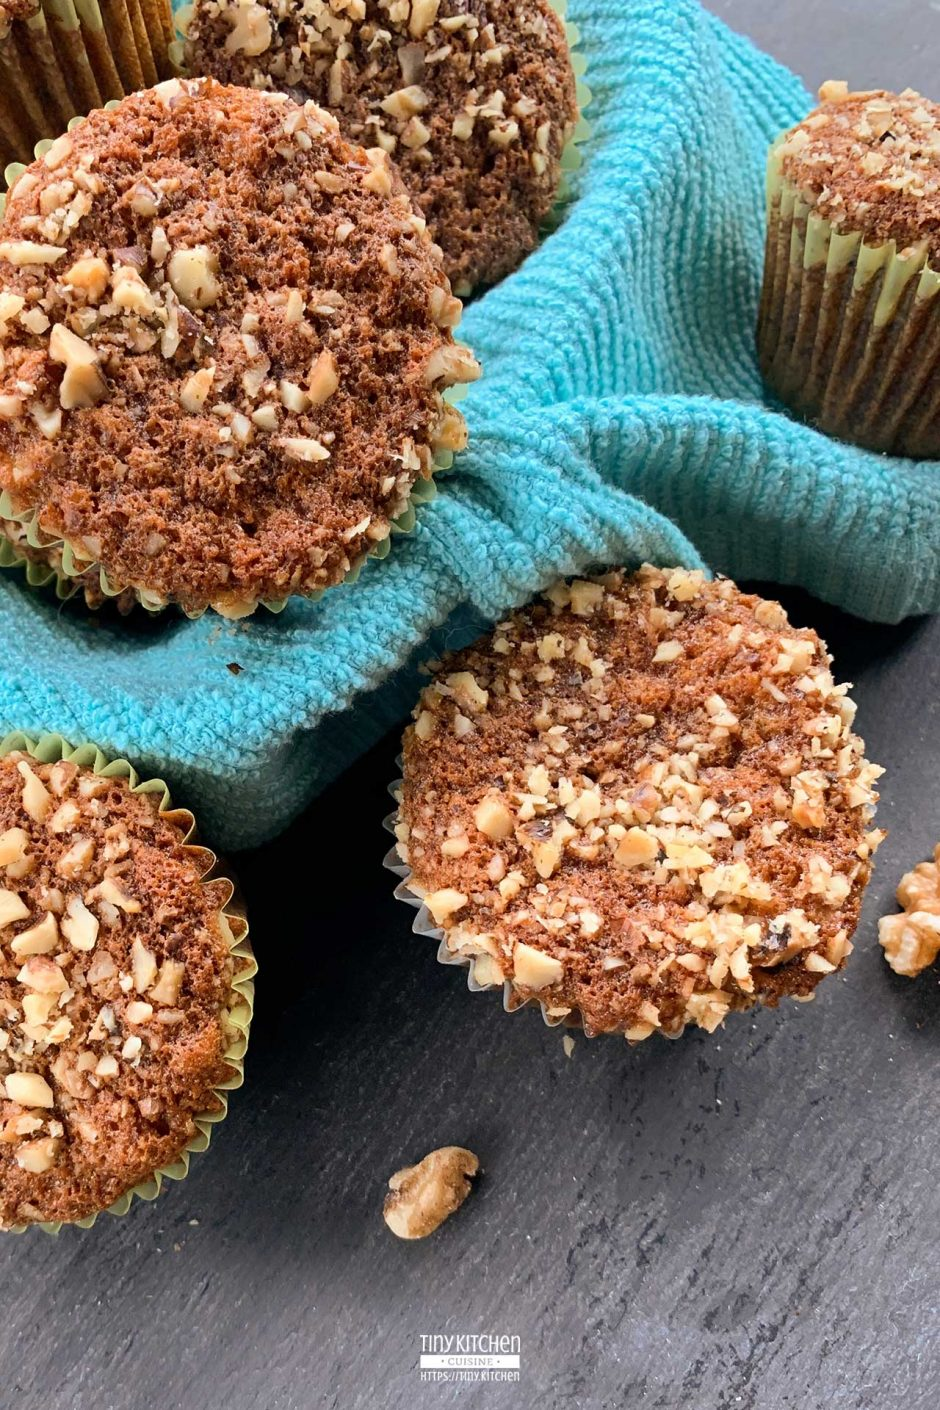 Banana nut muffins piled in a blue cloth lined basket.